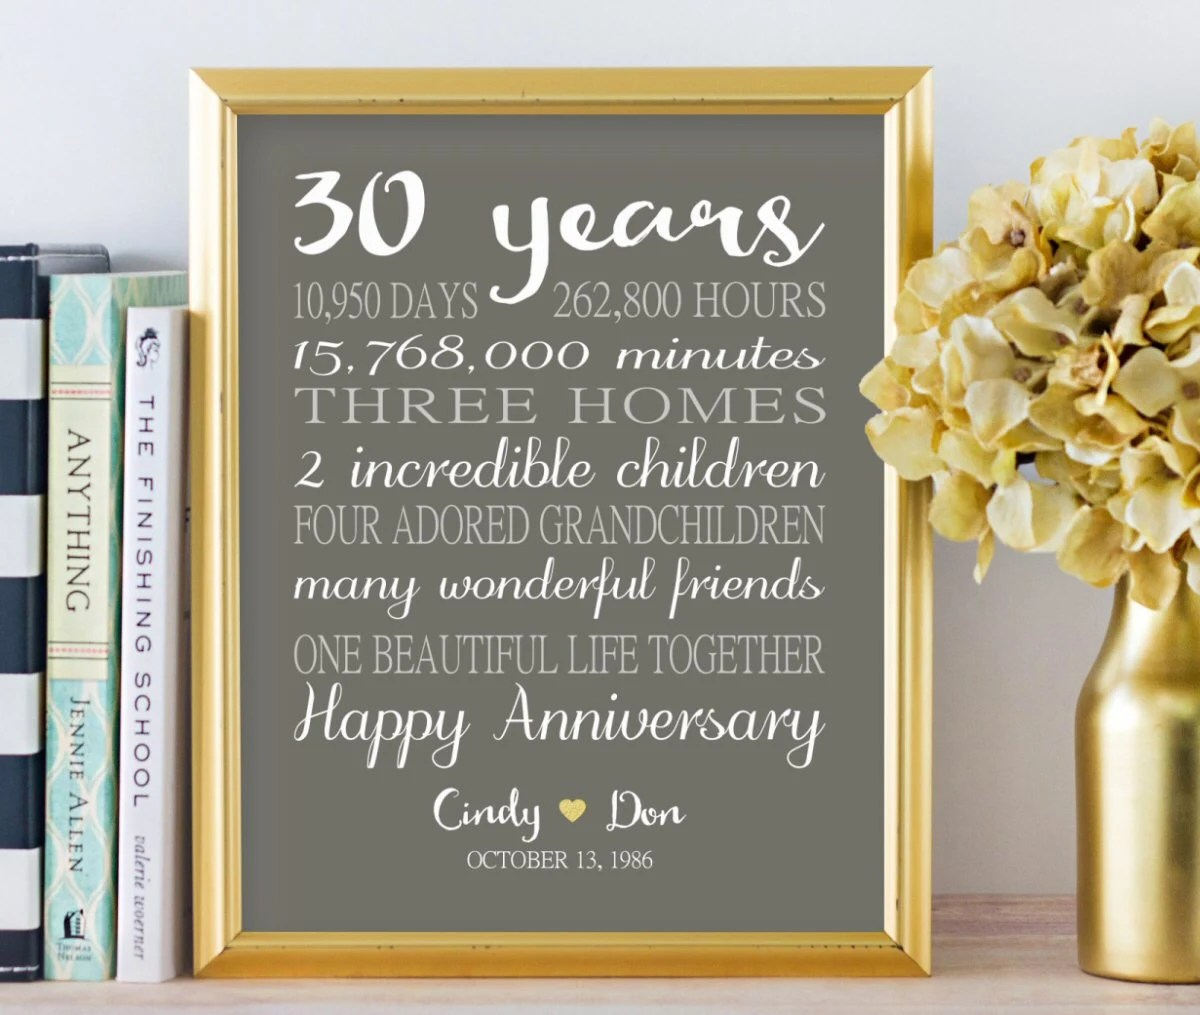 30th anniversary gifts personalized